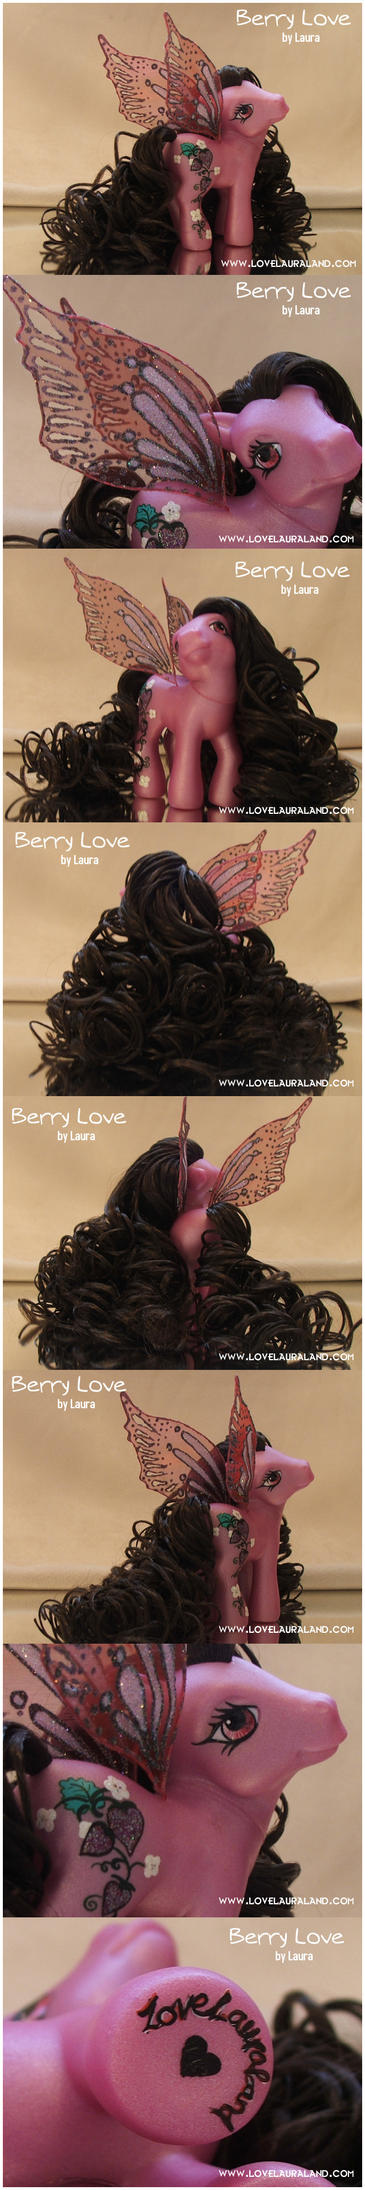 Berry Love by lovelauraland